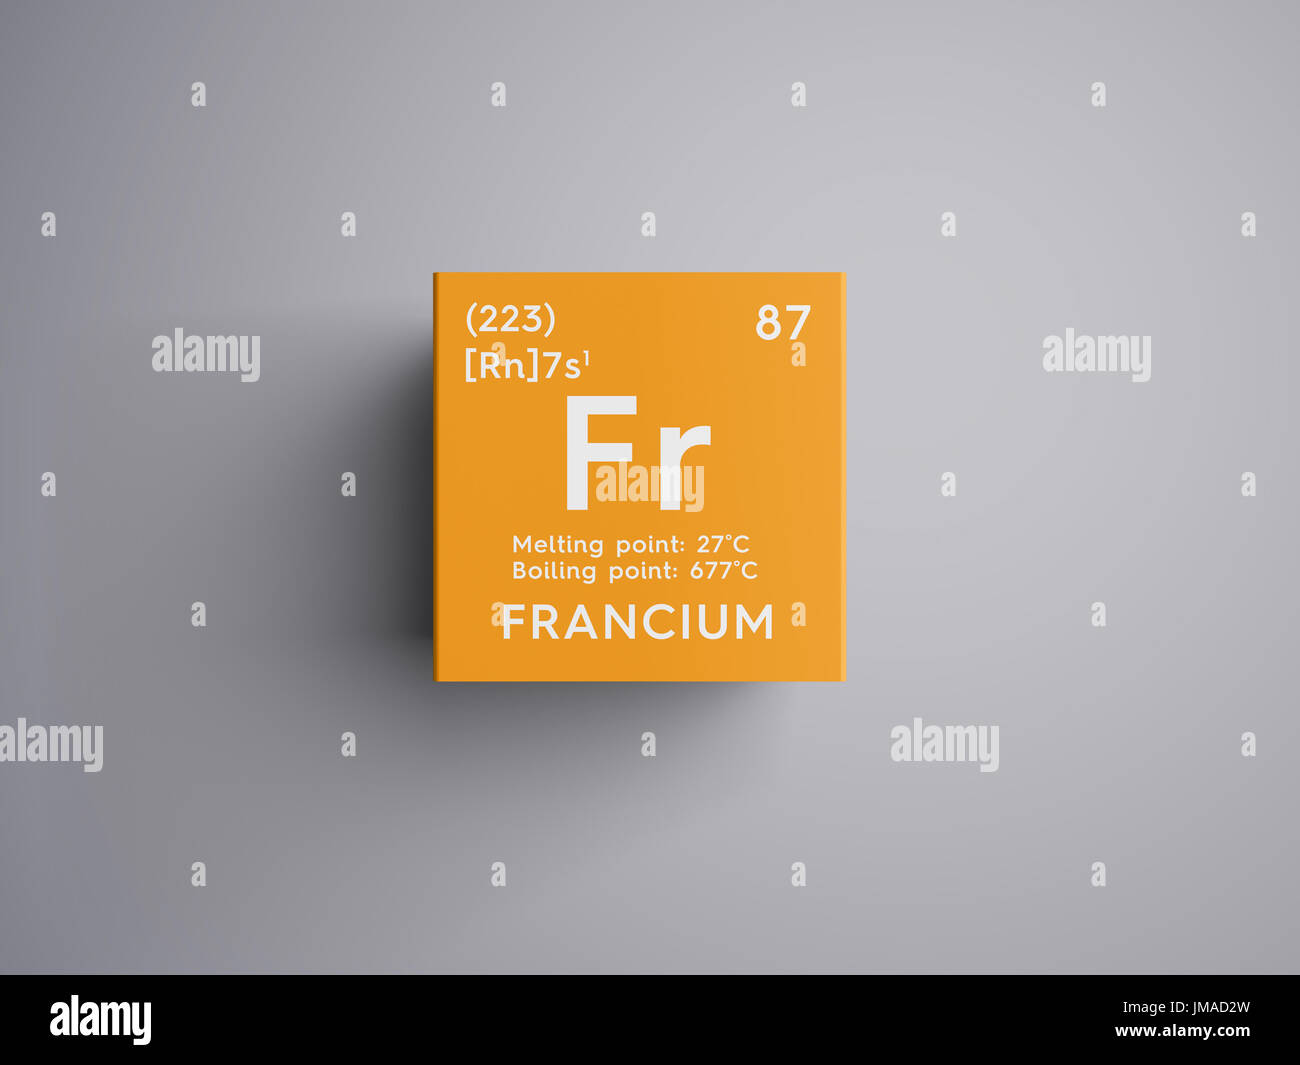 Francium Alkali Metals Chemical Element Of Mendeleevs Periodic